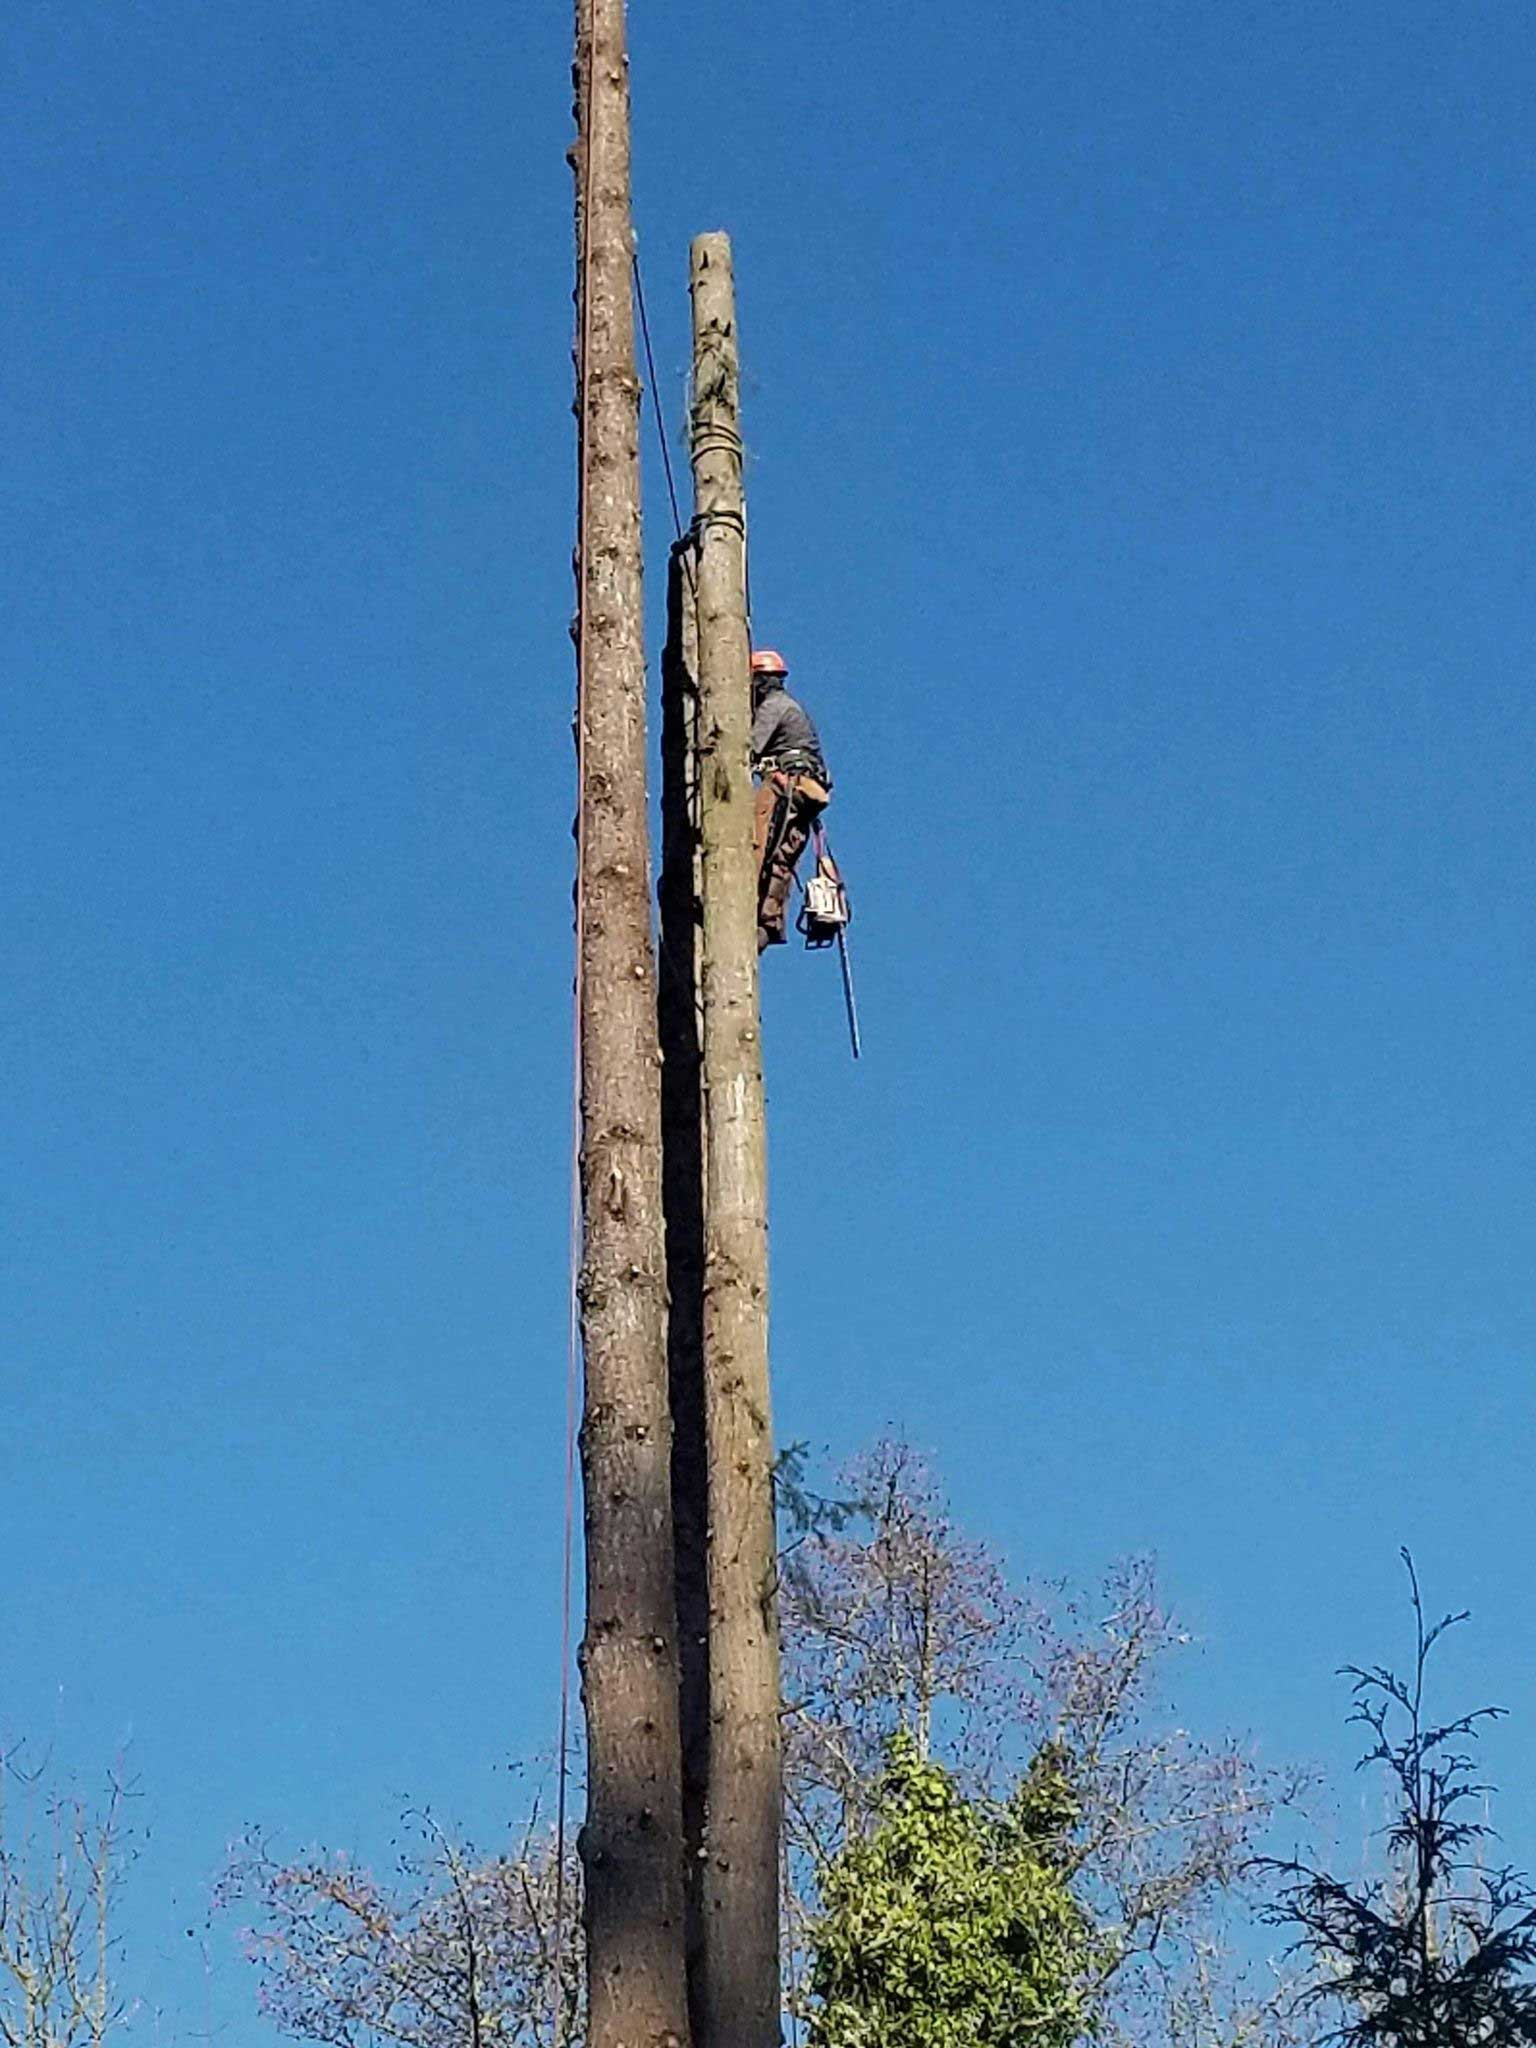 Emergency tree service with a fast response